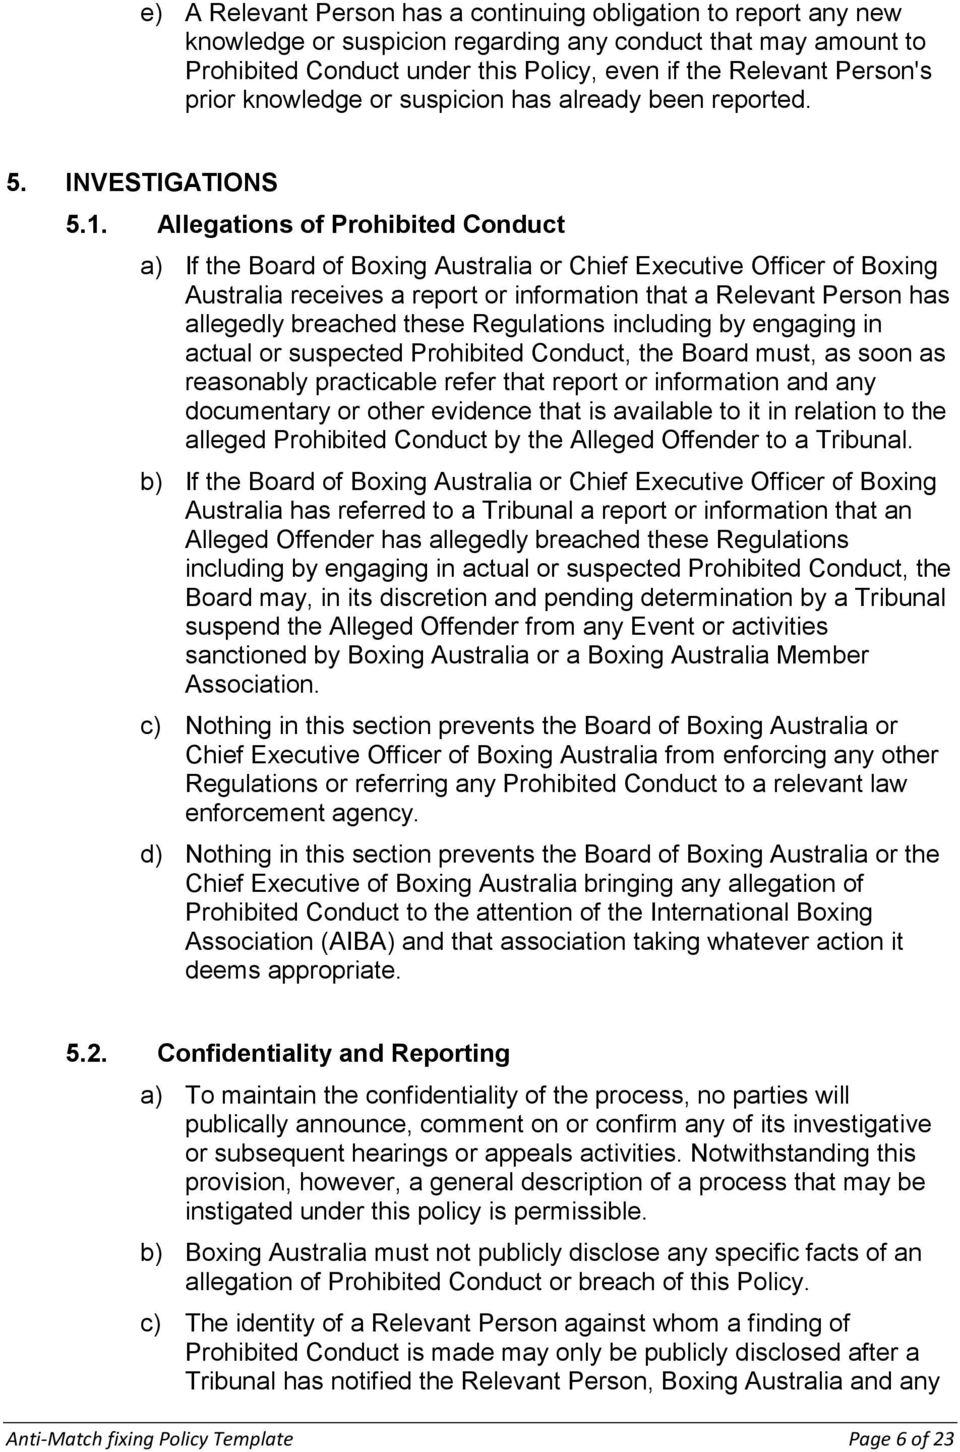 Allegations of Prohibited Conduct a) If the Board of Boxing Australia or Chief Executive Officer of Boxing Australia receives a report or information that a Relevant Person has allegedly breached